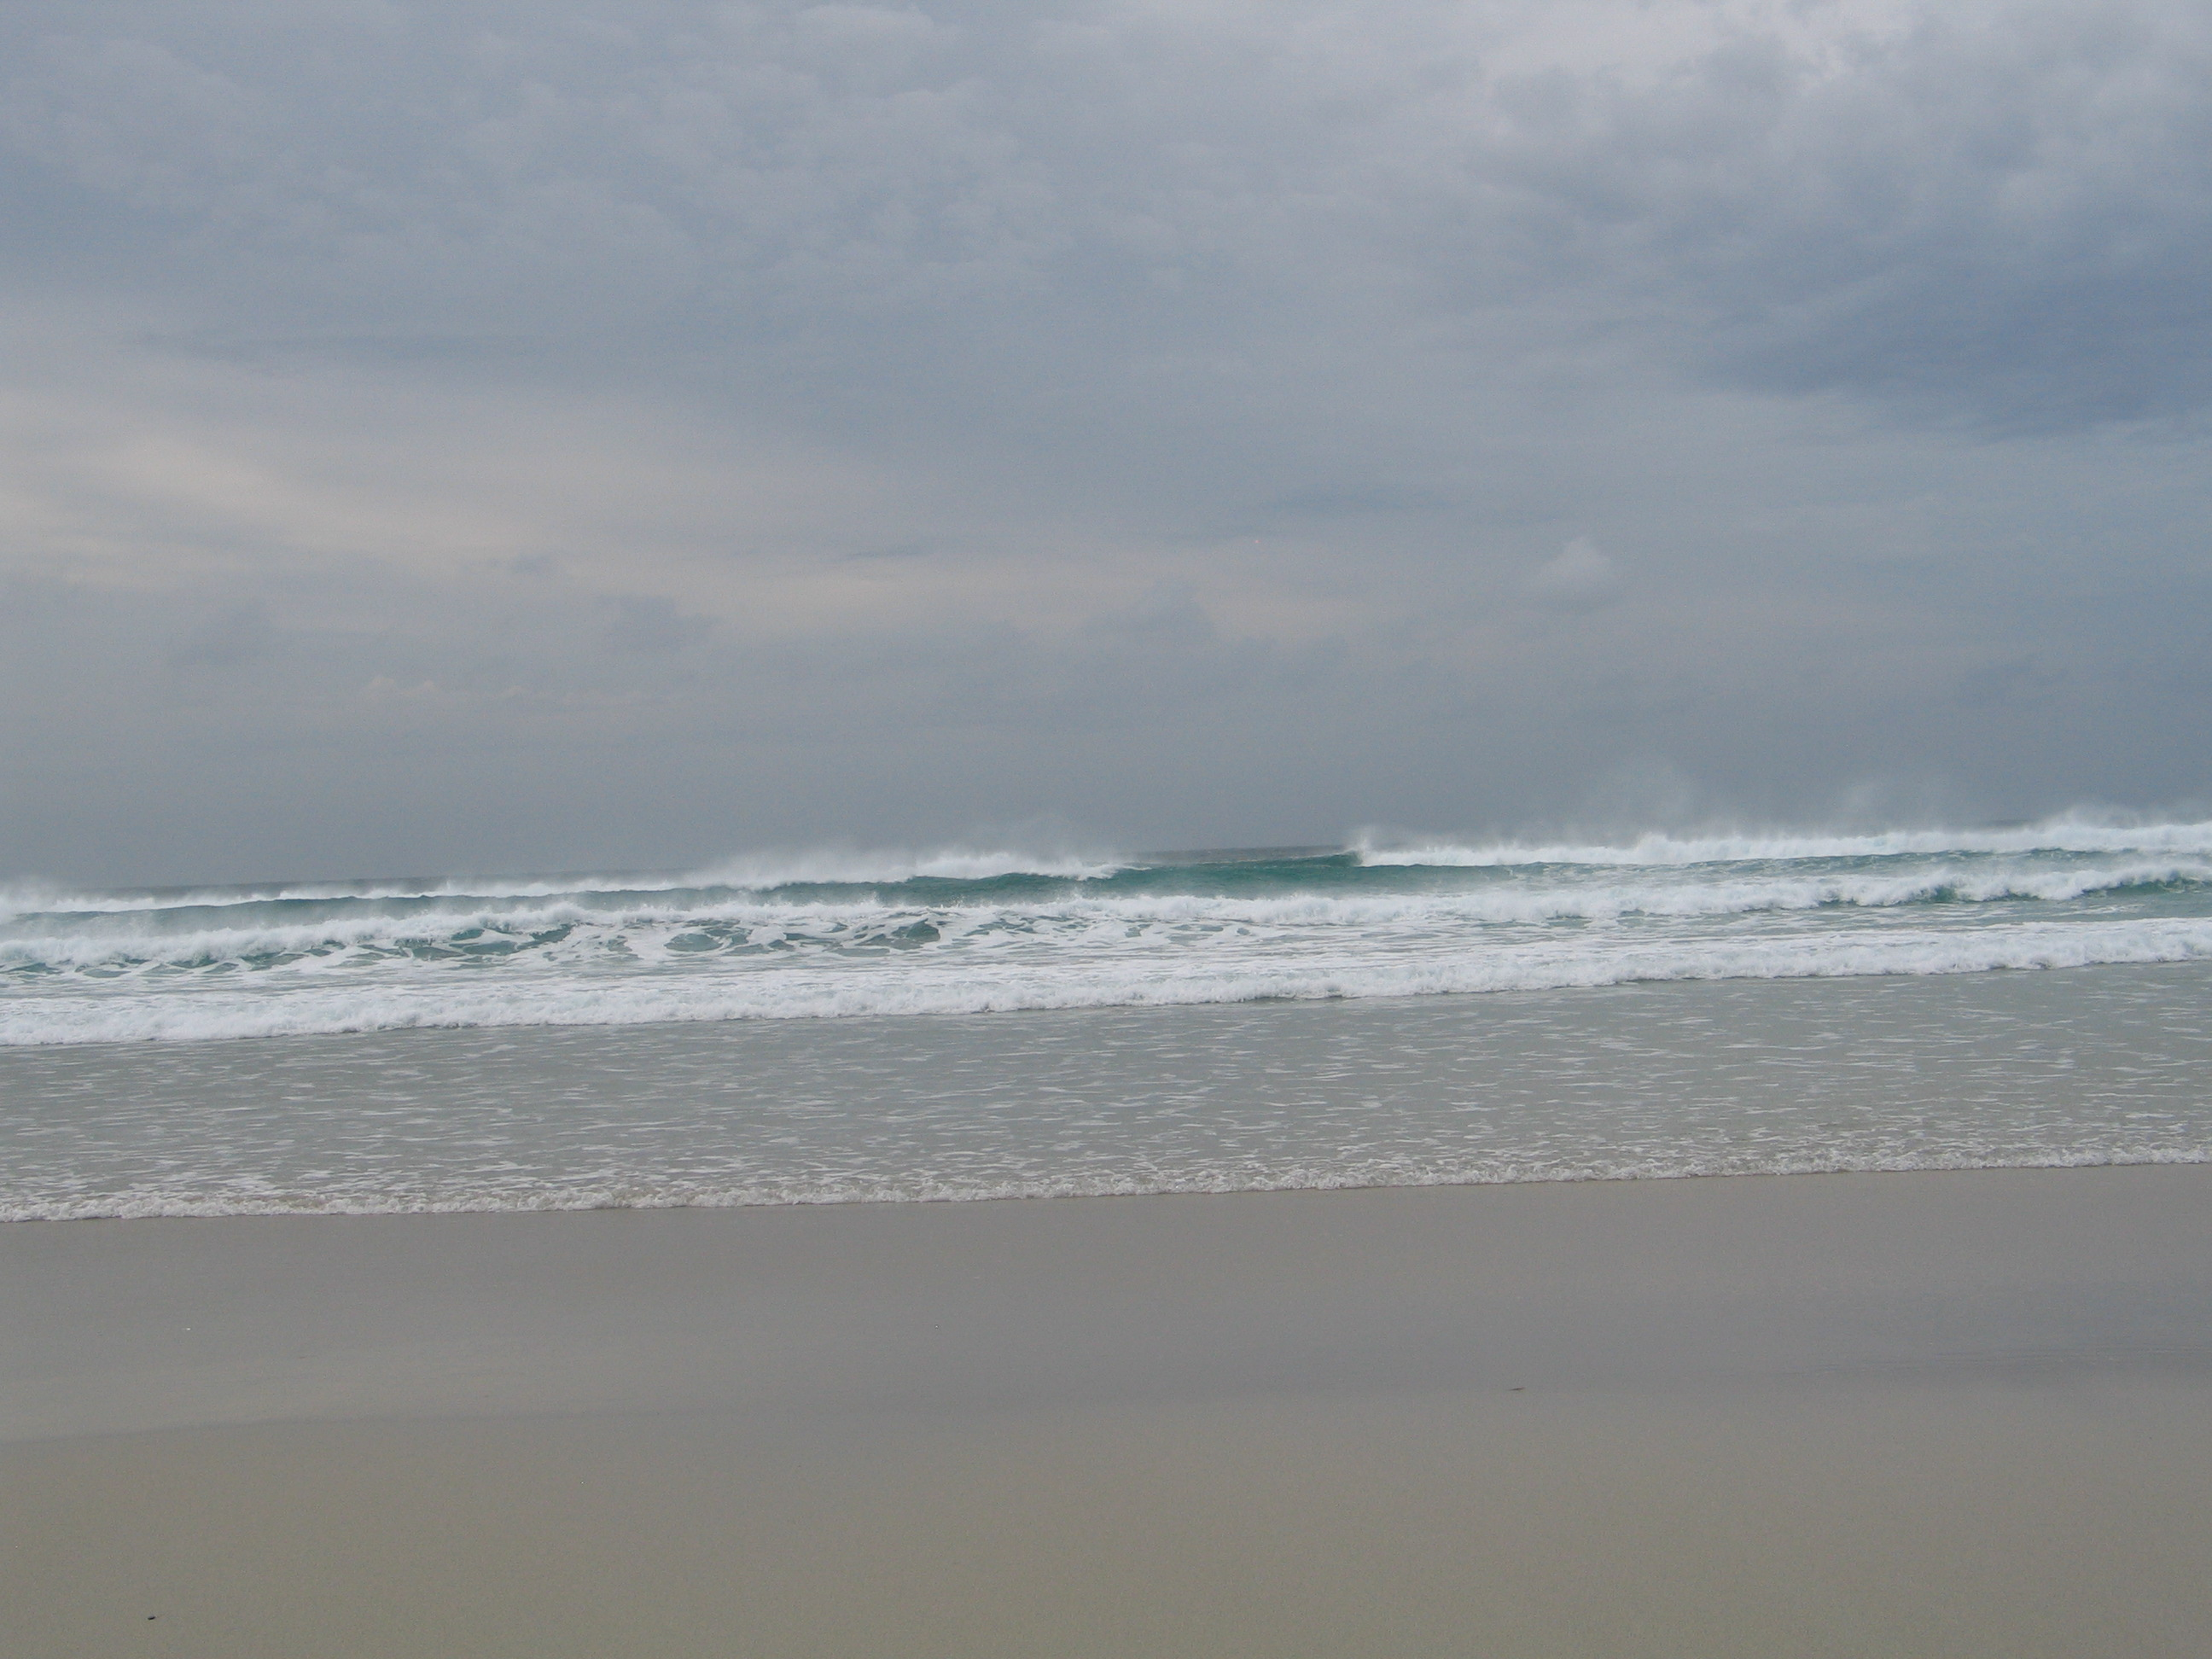 waves trailing vapour rolled towards the beach